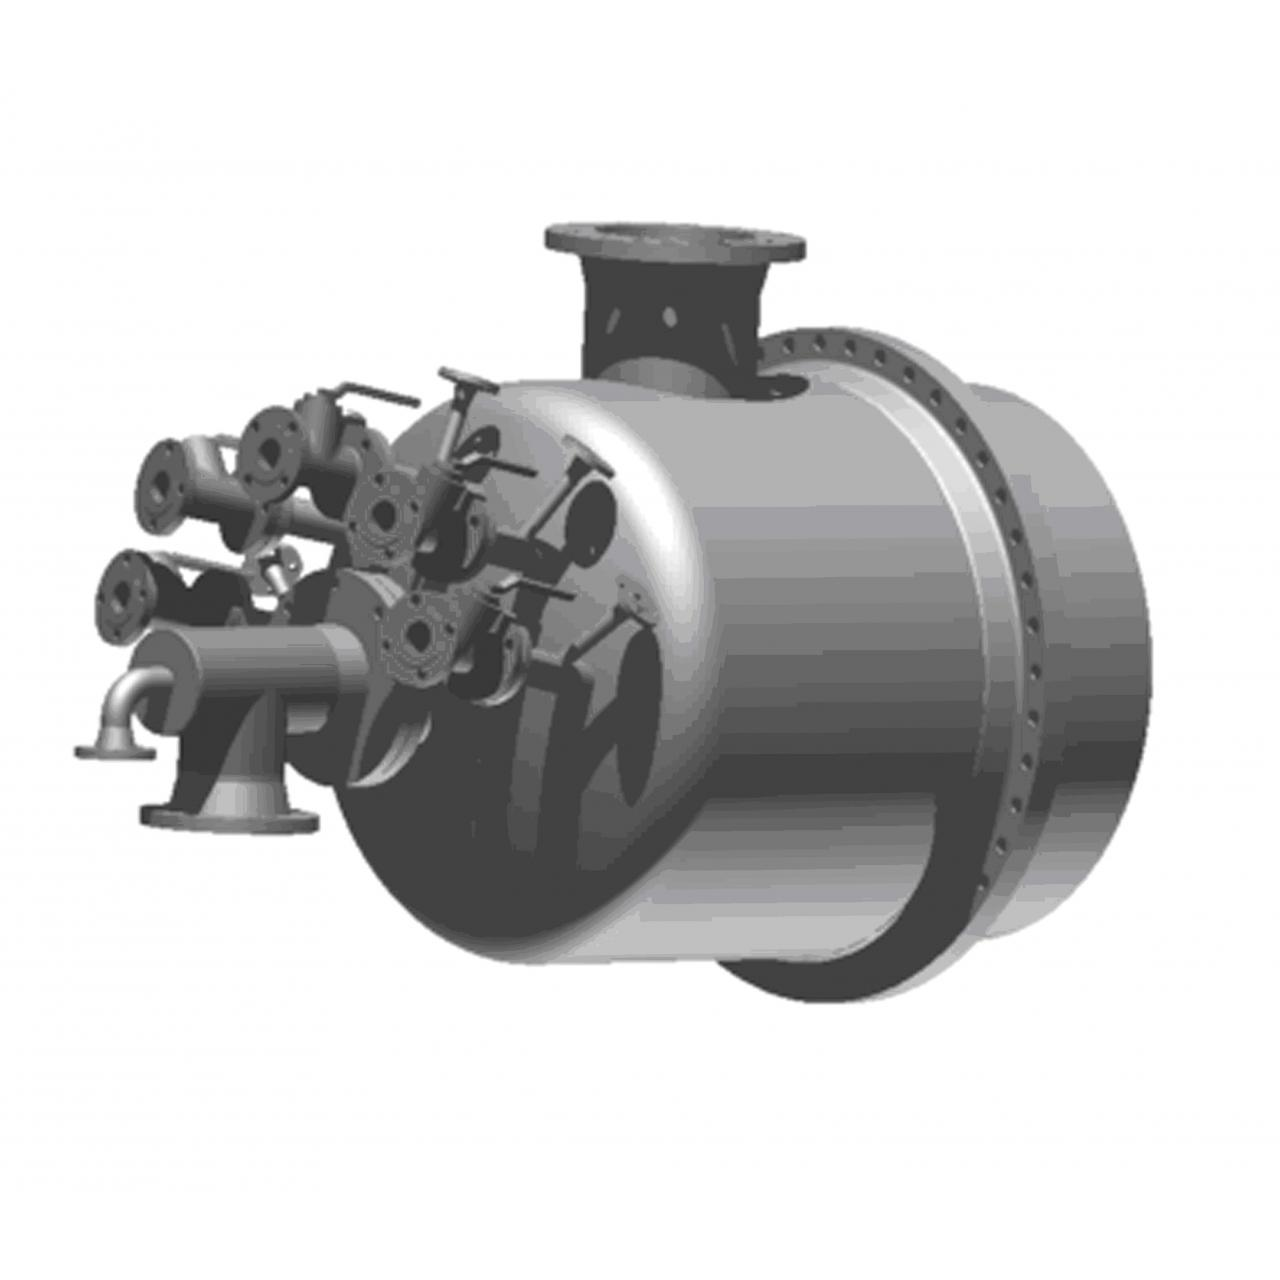 Cheap CanClaus Combustor for sale